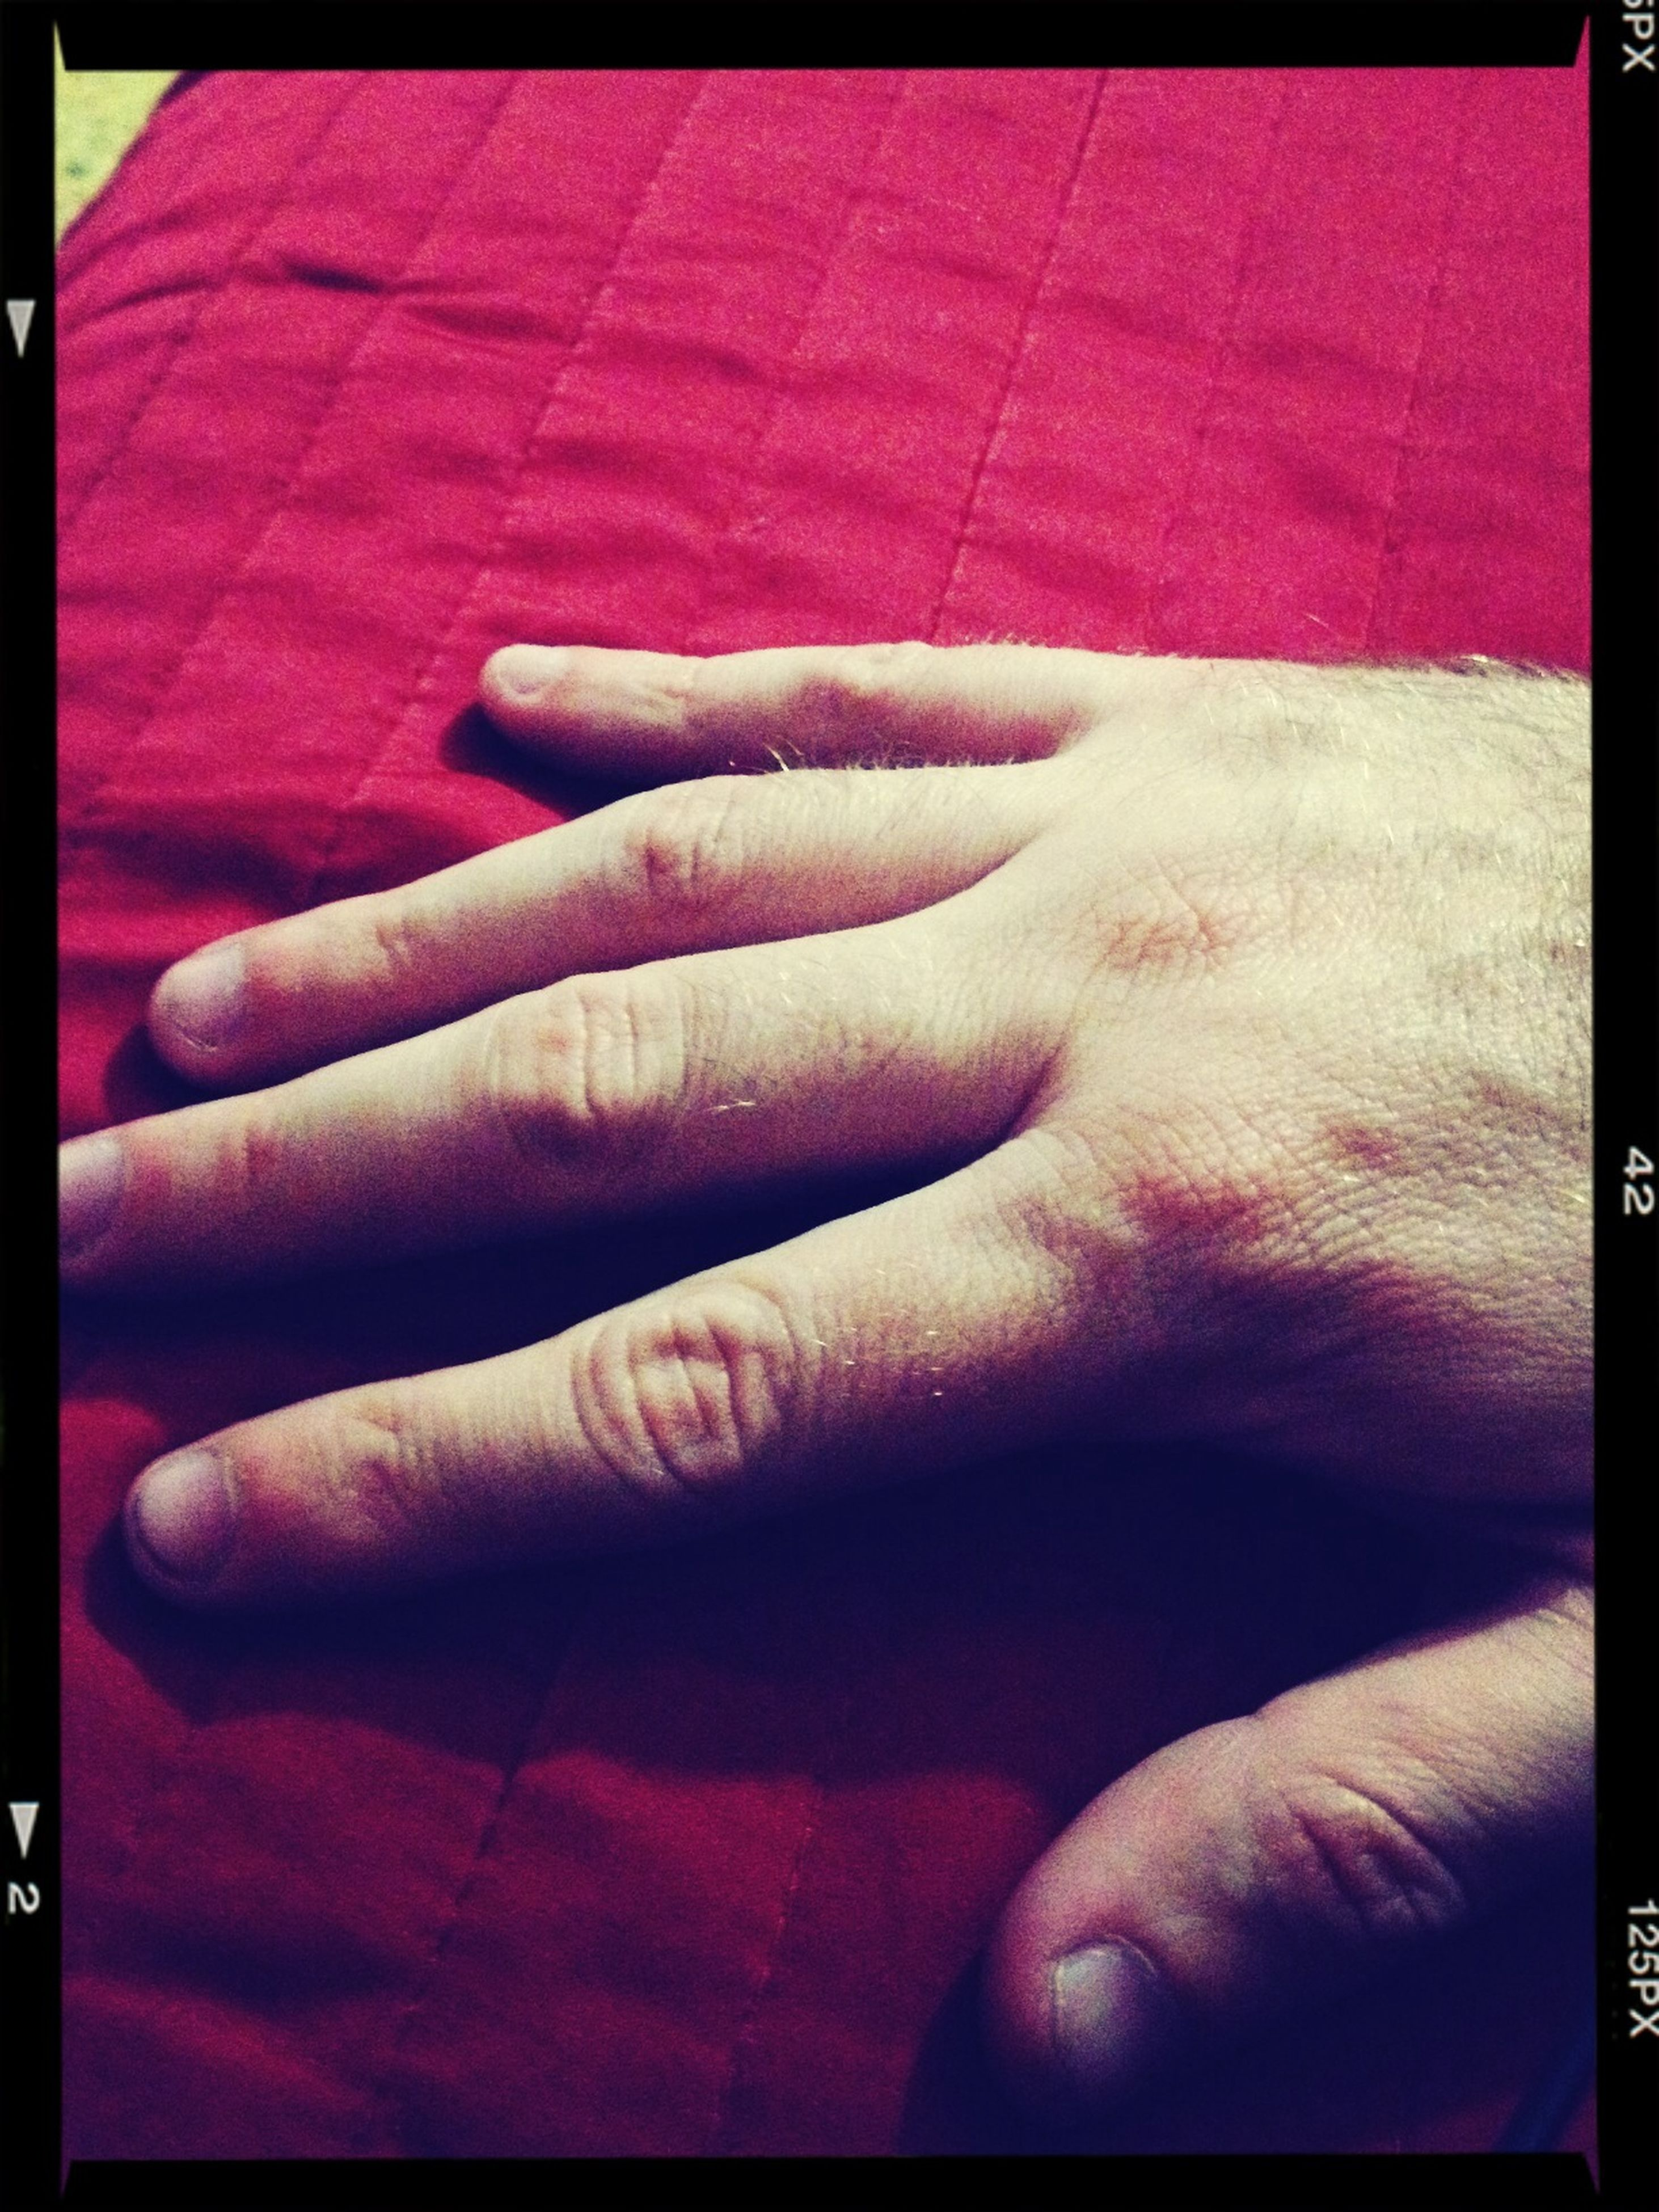 transfer print, auto post production filter, indoors, person, part of, close-up, human finger, lifestyles, cropped, red, unrecognizable person, men, bed, selective focus, holding